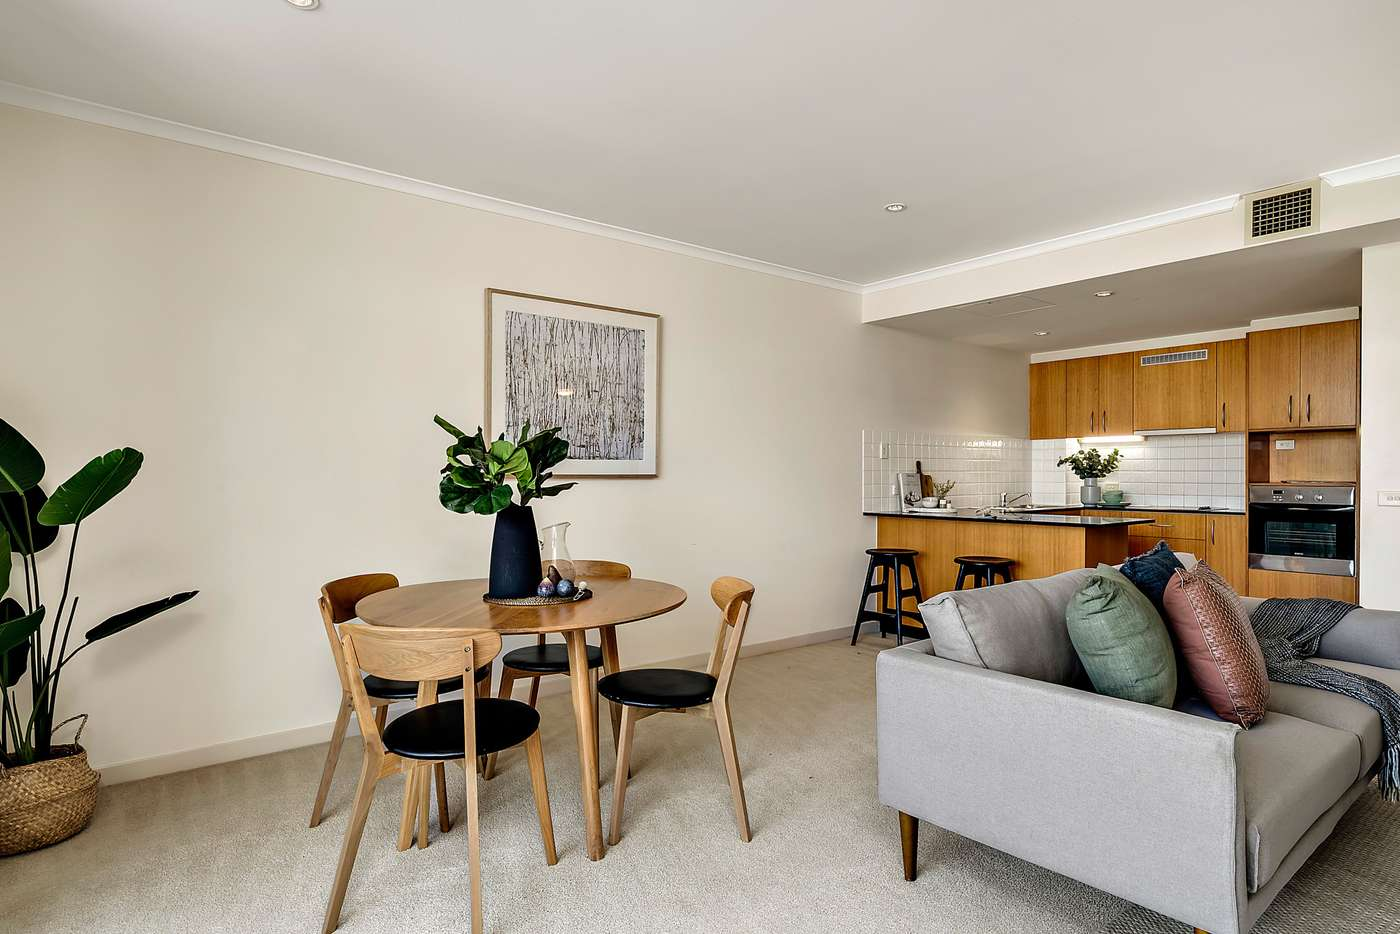 Fifth view of Homely house listing, 28/12 National Circuit, Barton ACT 2600